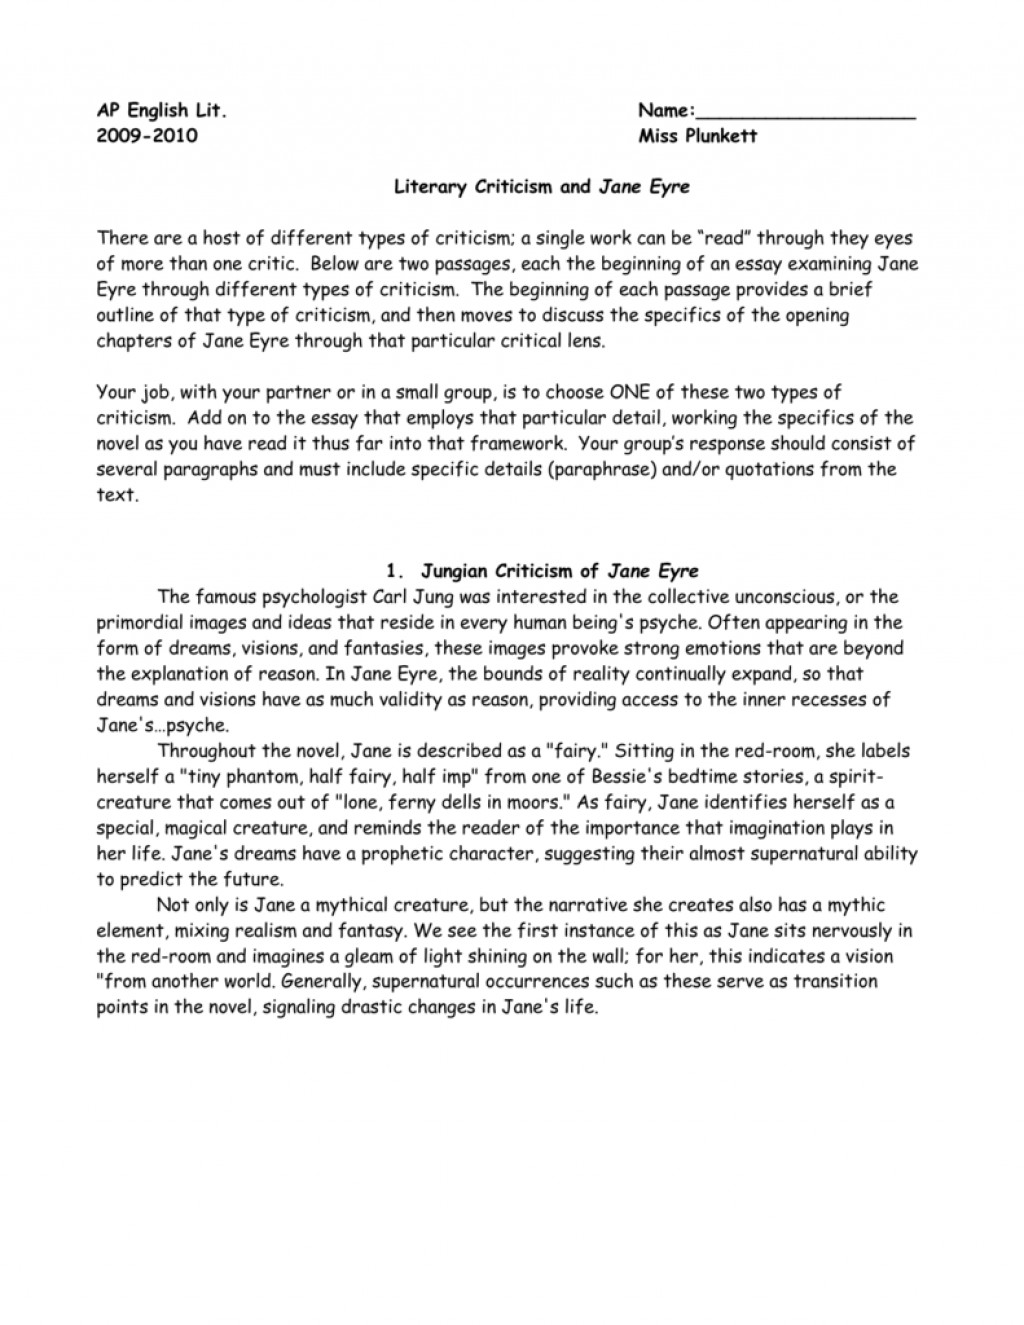 001 Jane Eyre Essay Amazing Possible Questions Topic Ideas Large